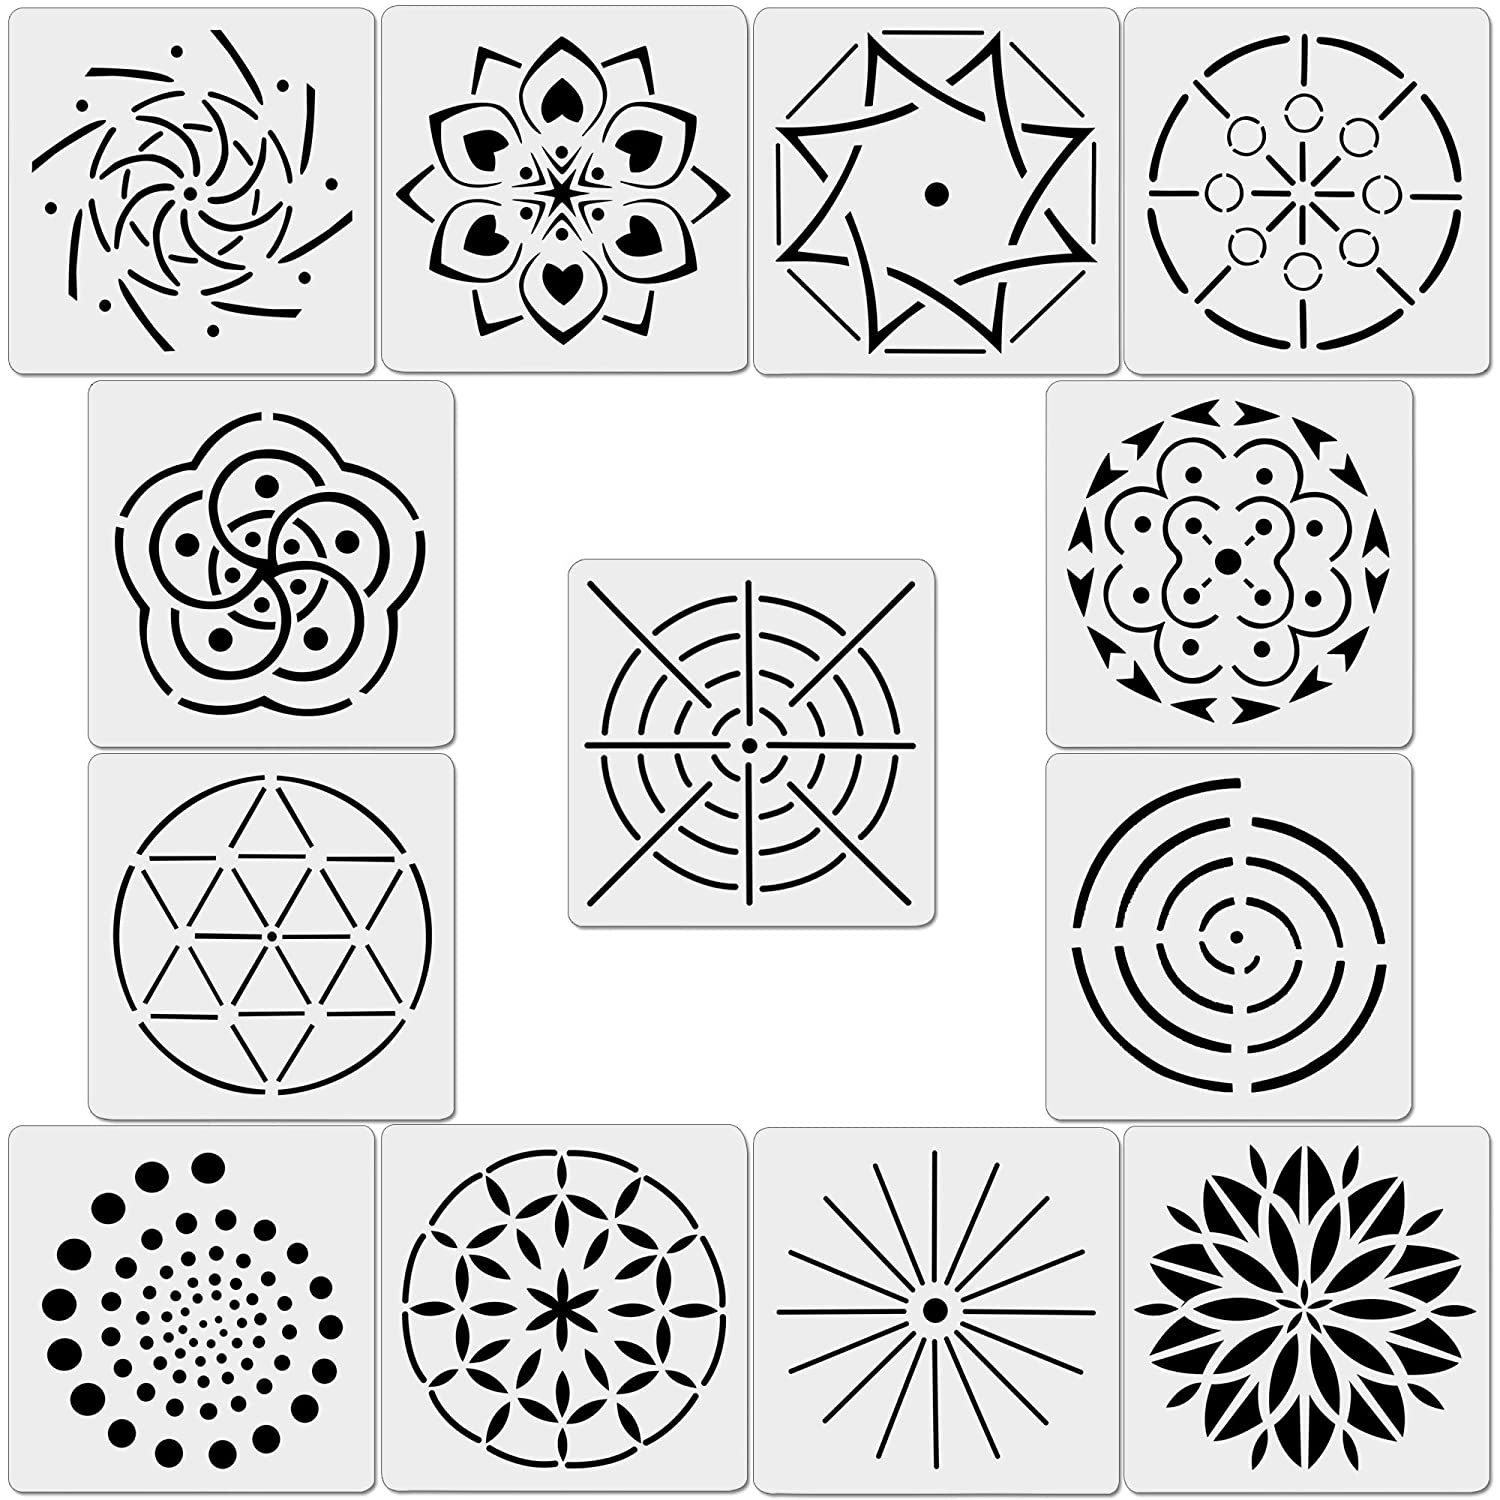 13 Pack Mandala Dot Painting Templates Stencils for DIY Painting Art Projects Augshy